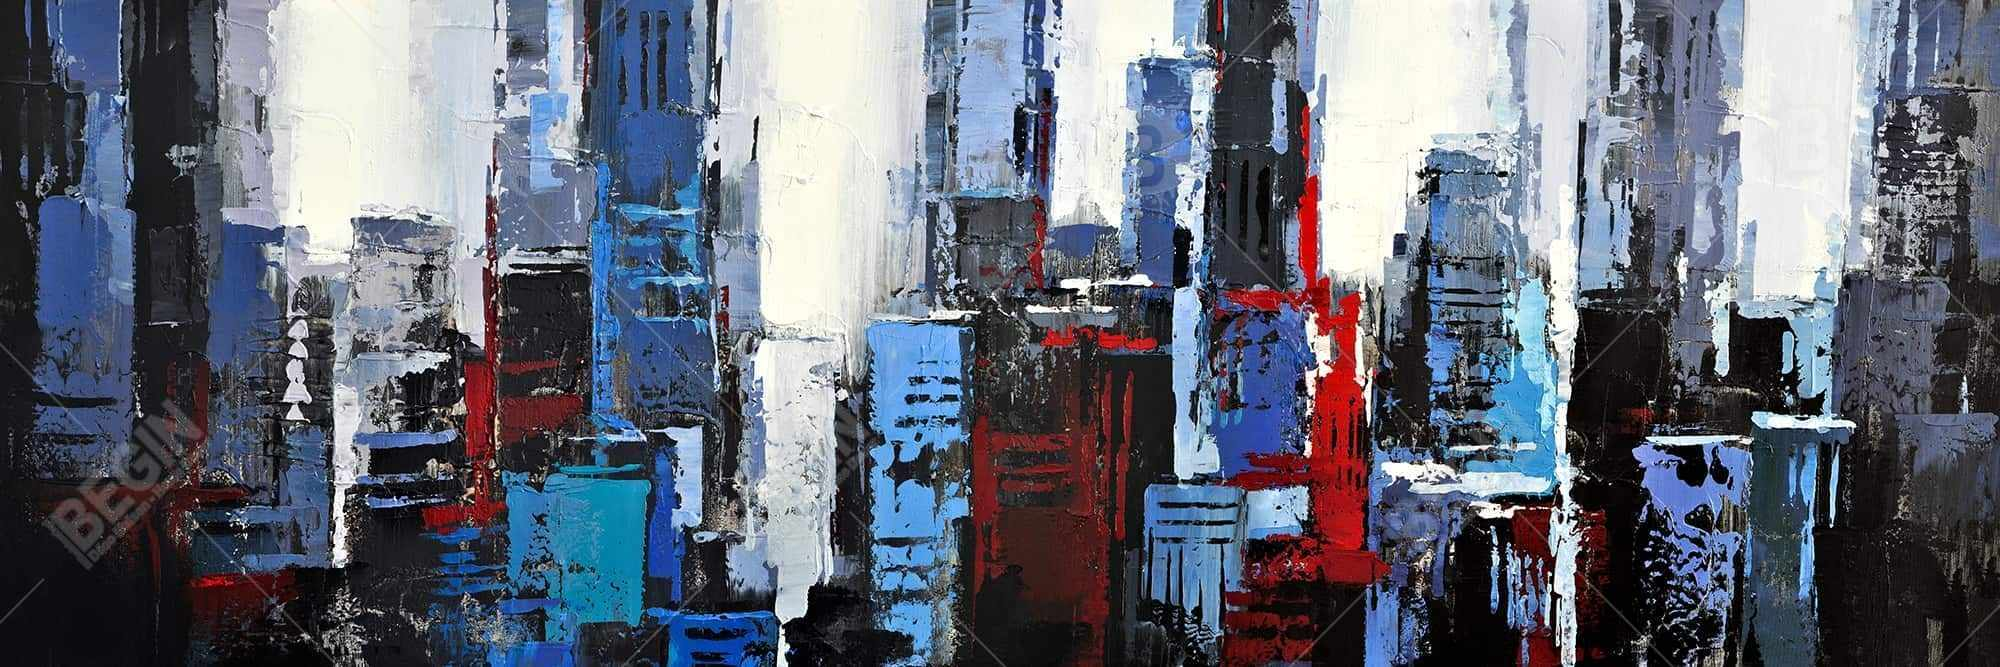 Abstract blue city